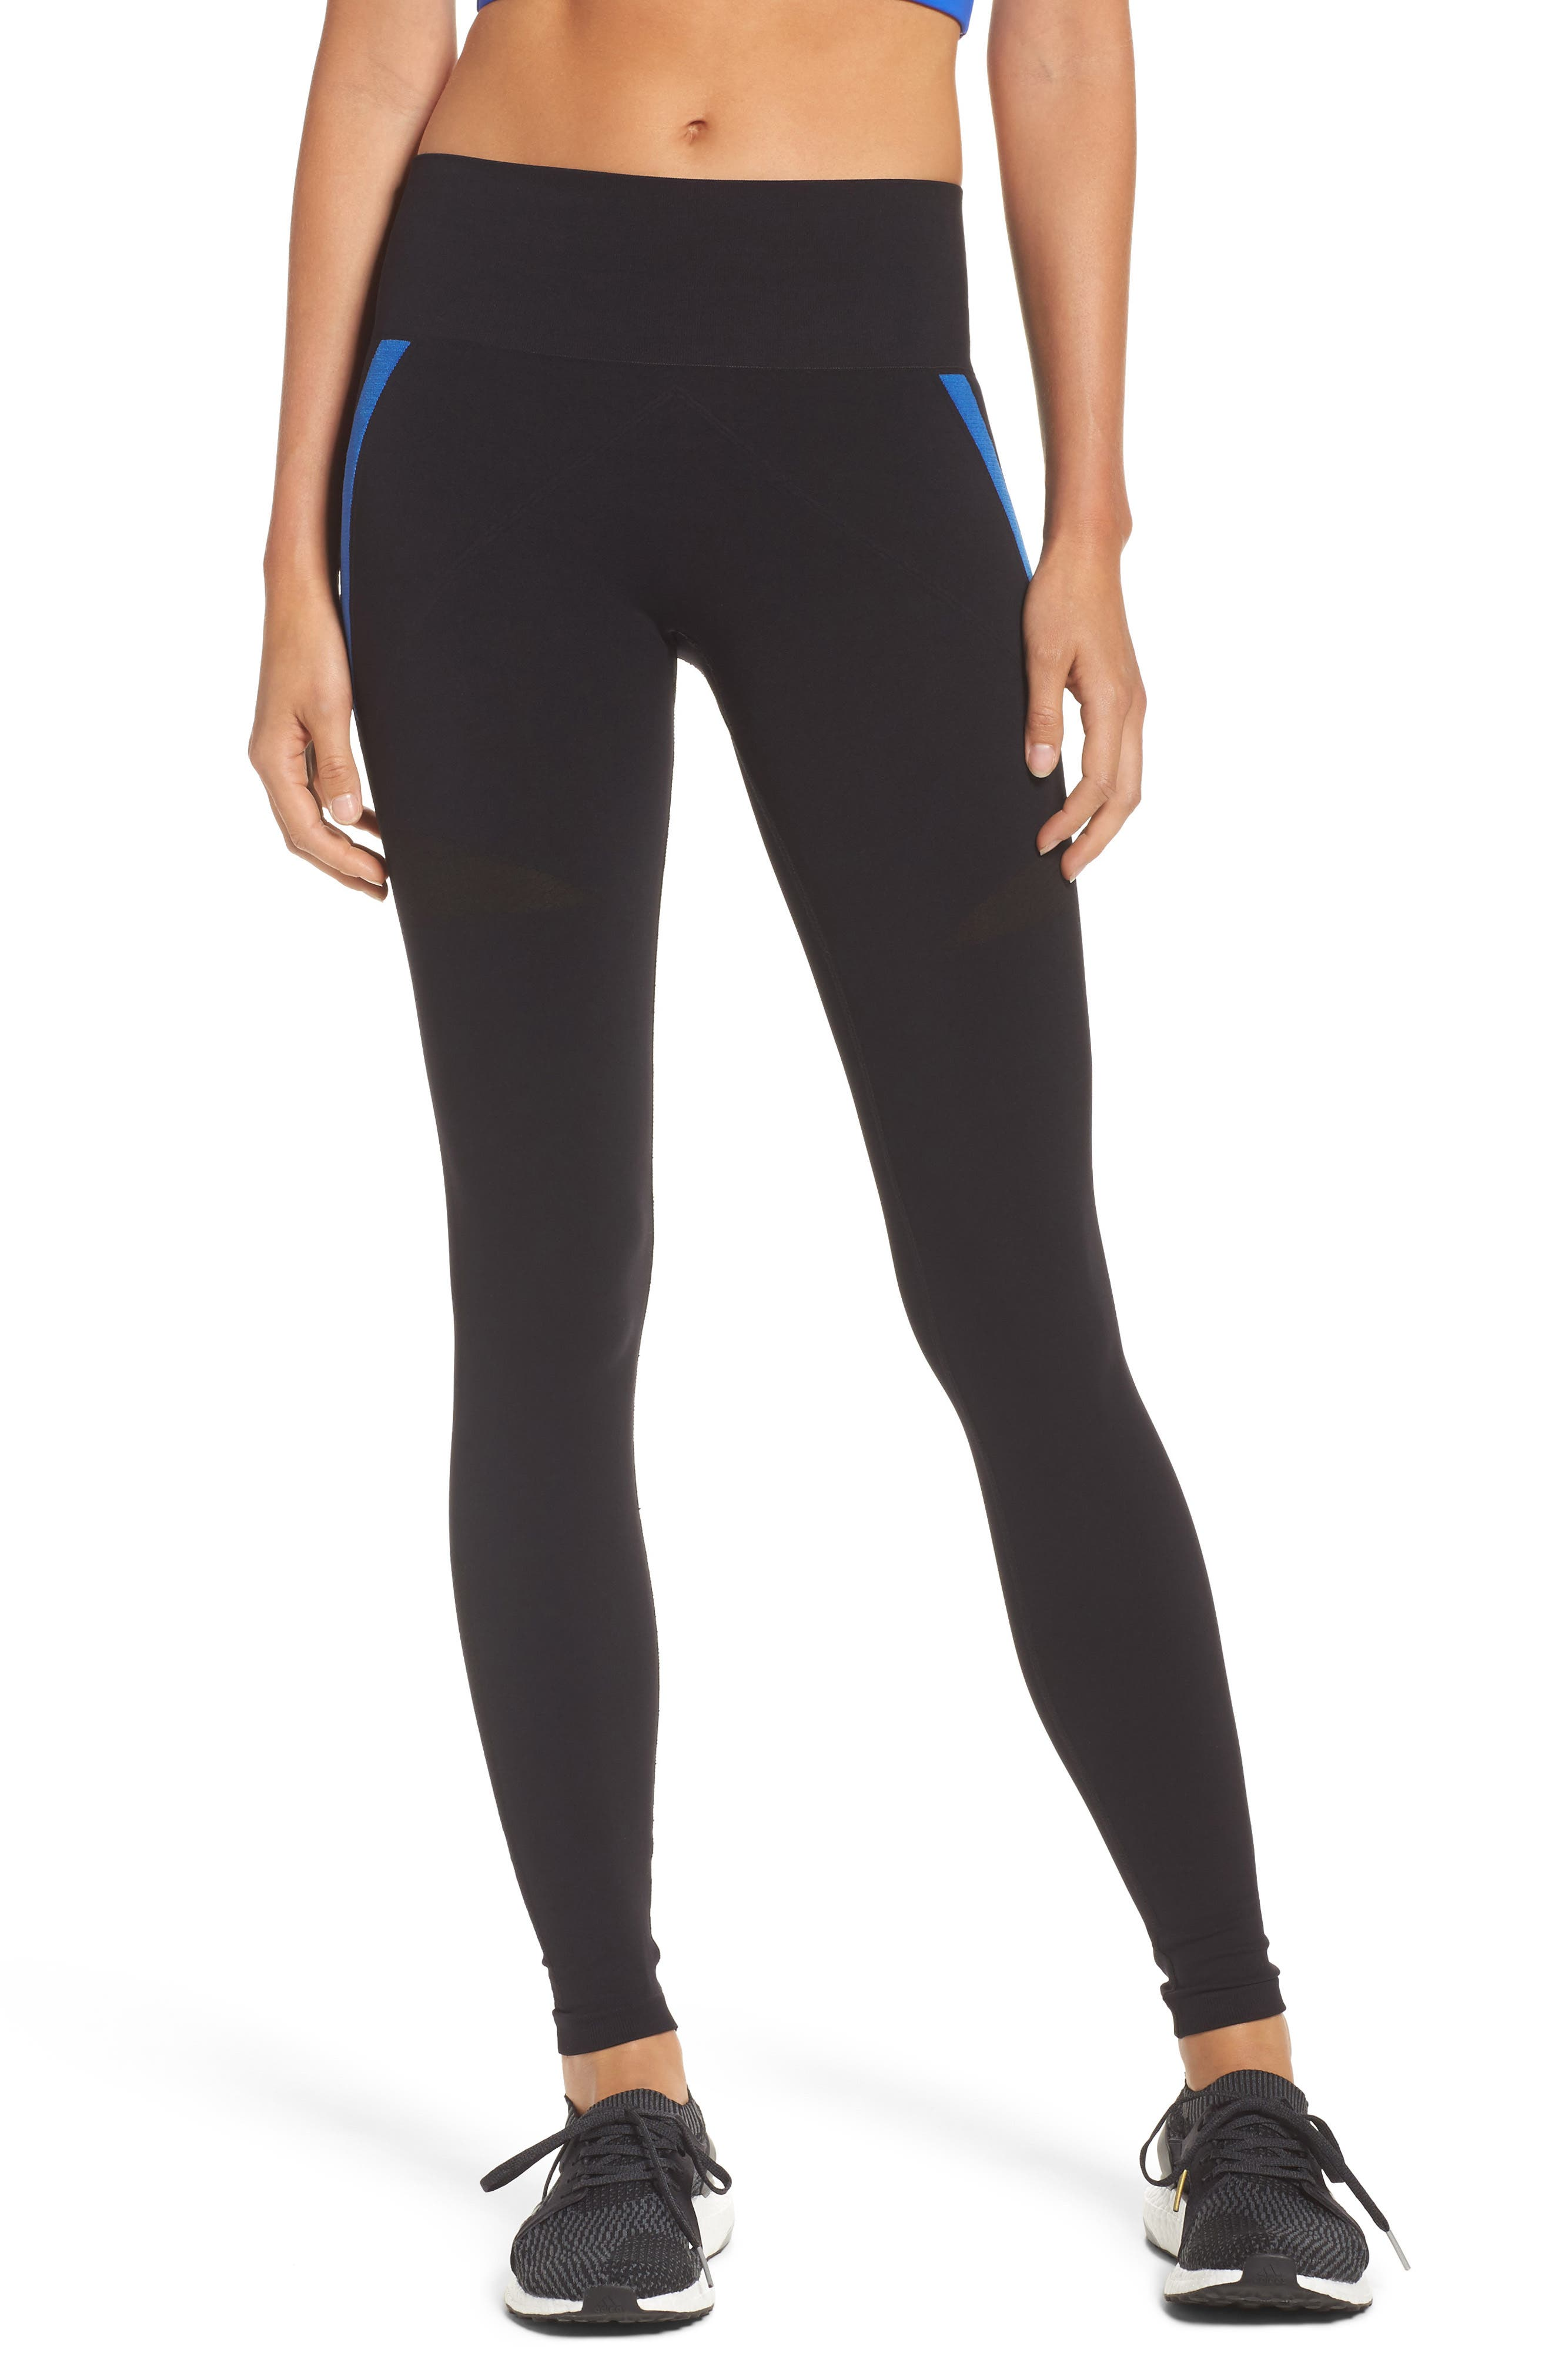 BoomBoom Athletica Leggings,                         Main,                         color, Black With Blue